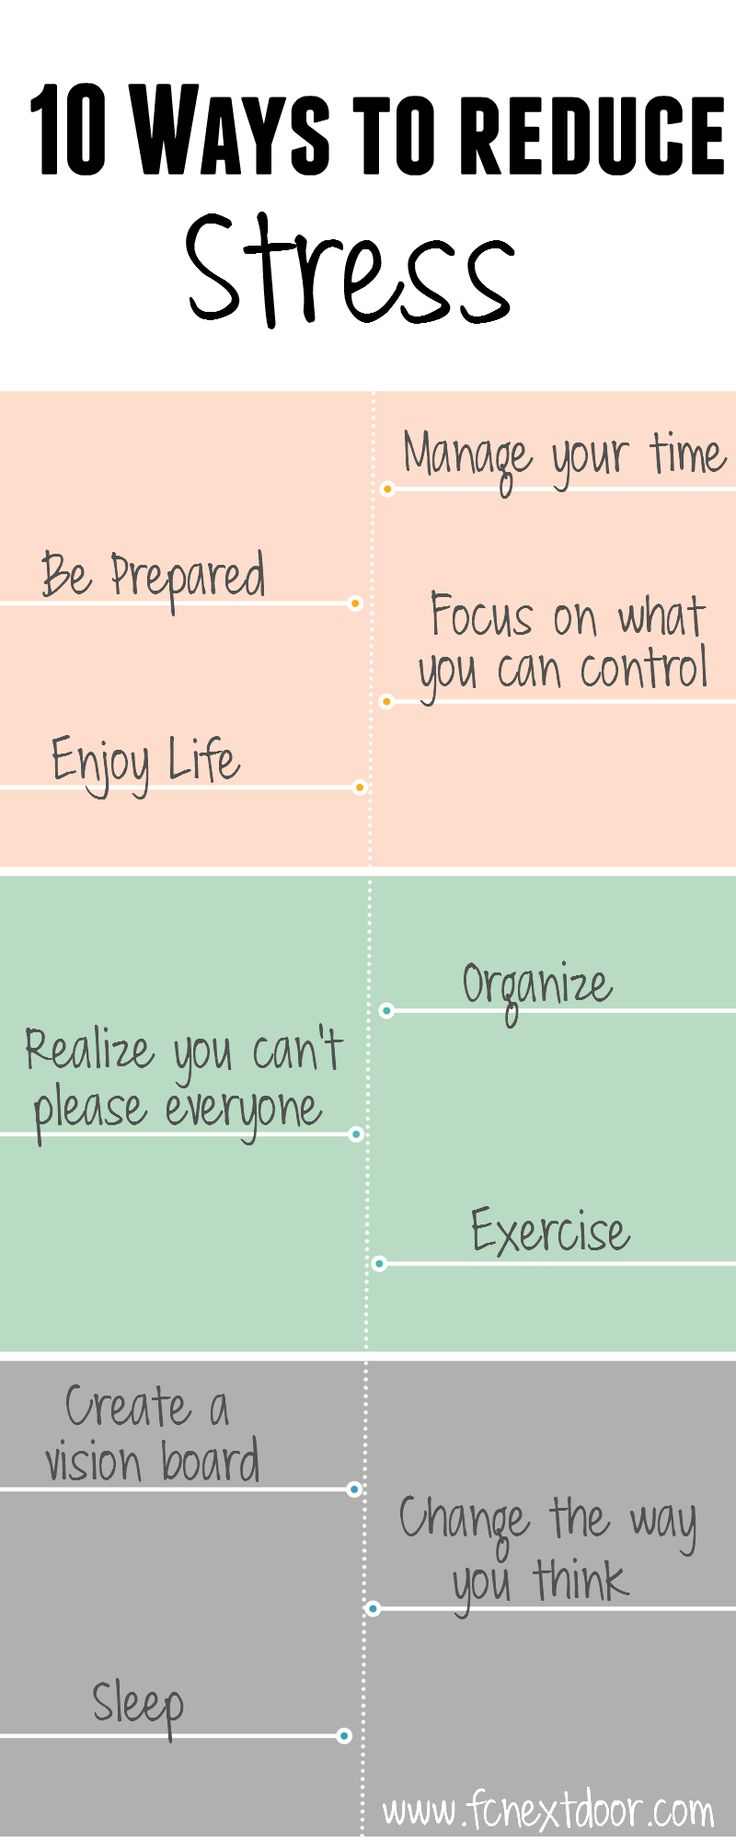 Fit Chick's 10 Ways to Reduce Stress